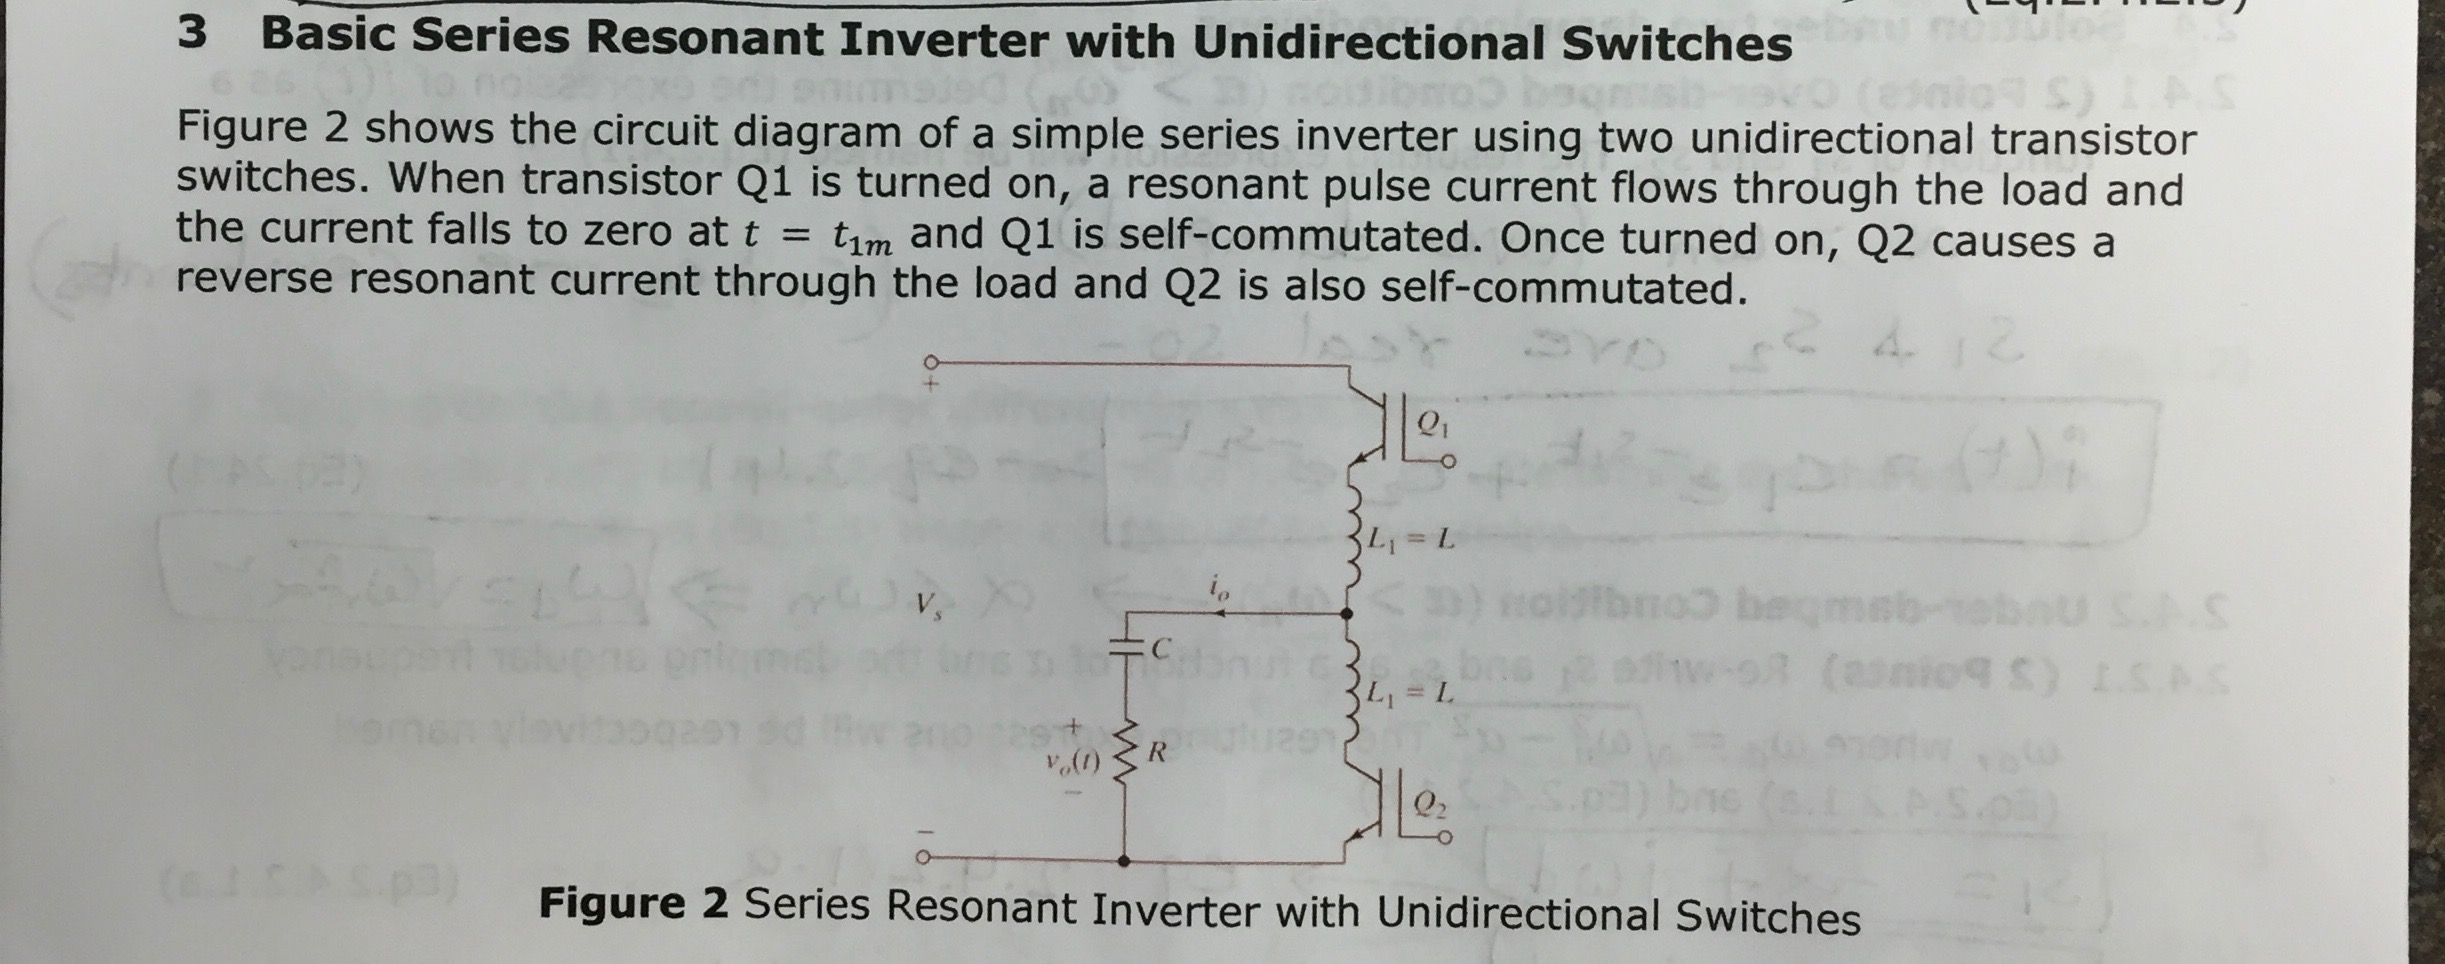 Solved 3 Basic Series Resonant Inverter With Unidirection Circuit Diagram Unidirectional Switches Figure 2 Shows The Of A